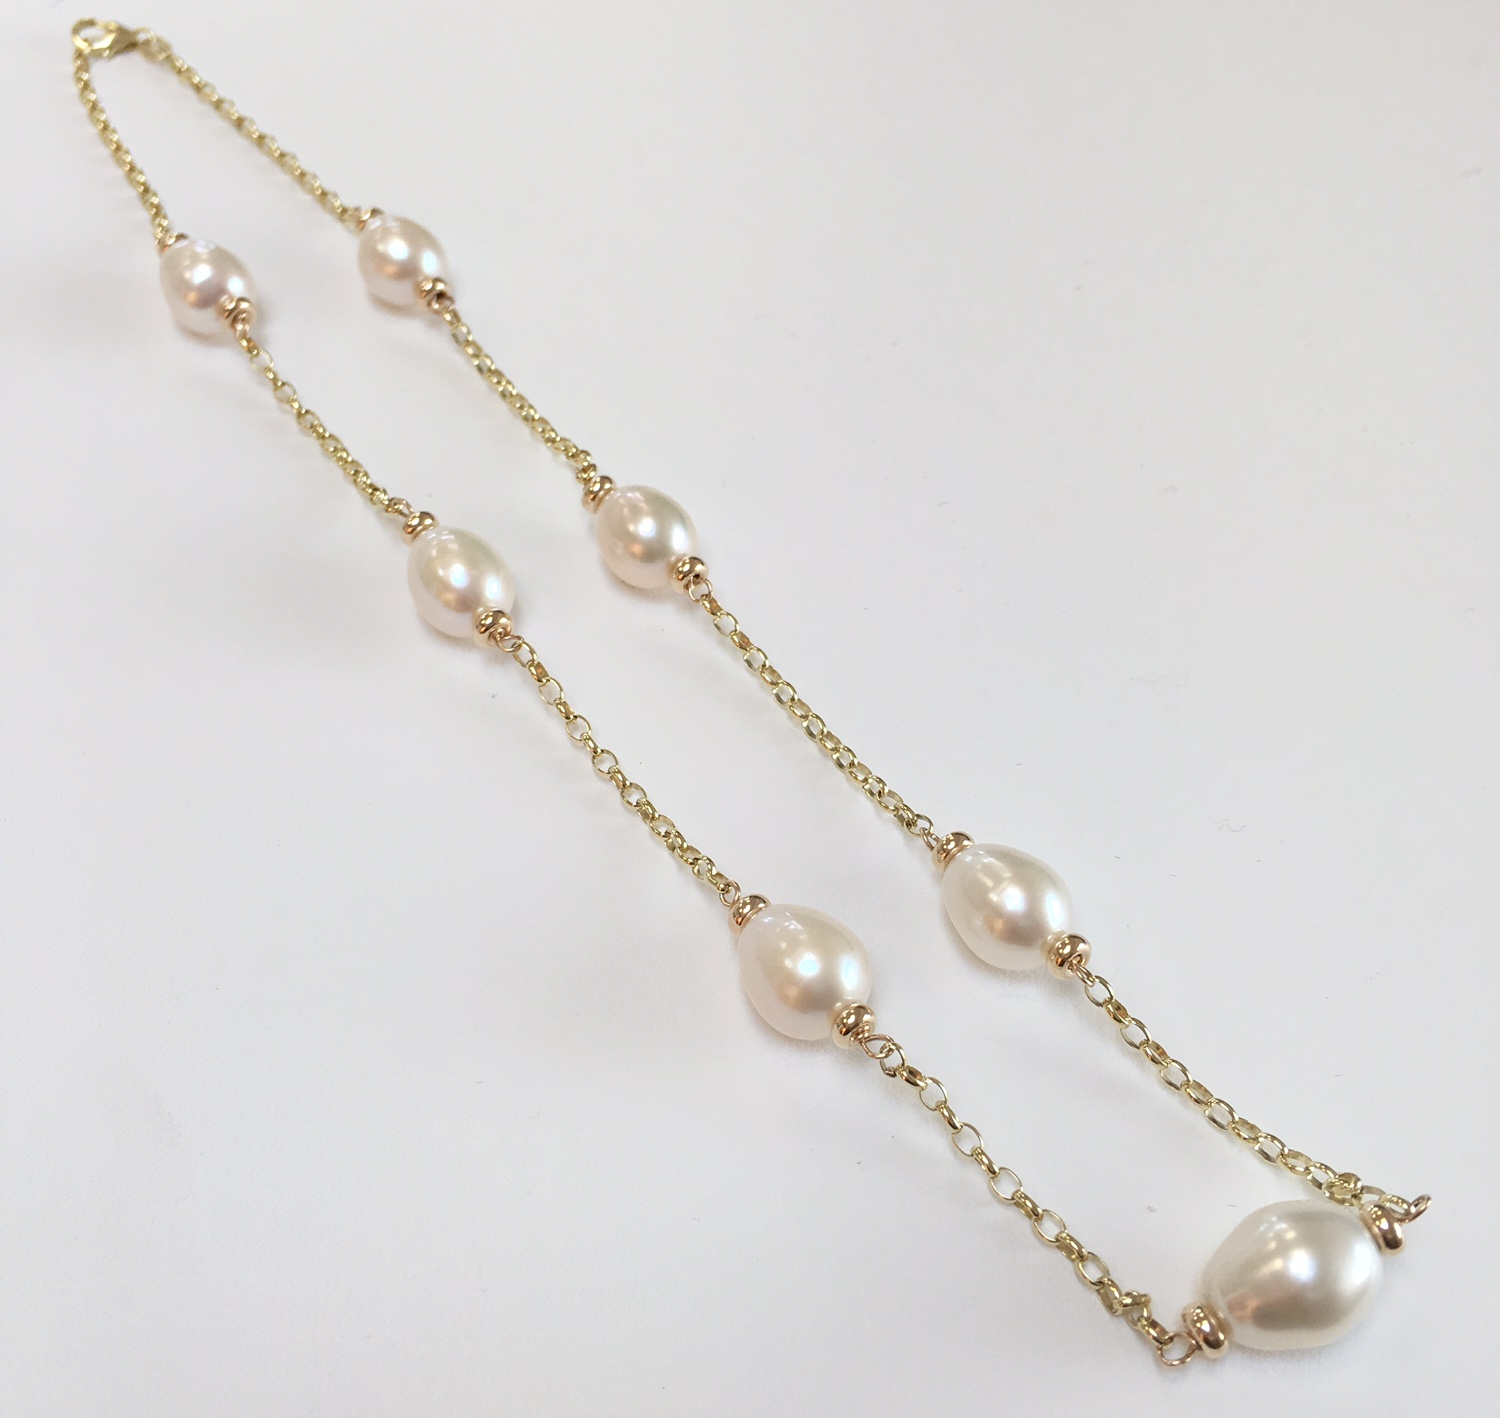 gold jewellery necklaces blossom necklace pearl freshwater crystal devoted alan zoom hannah